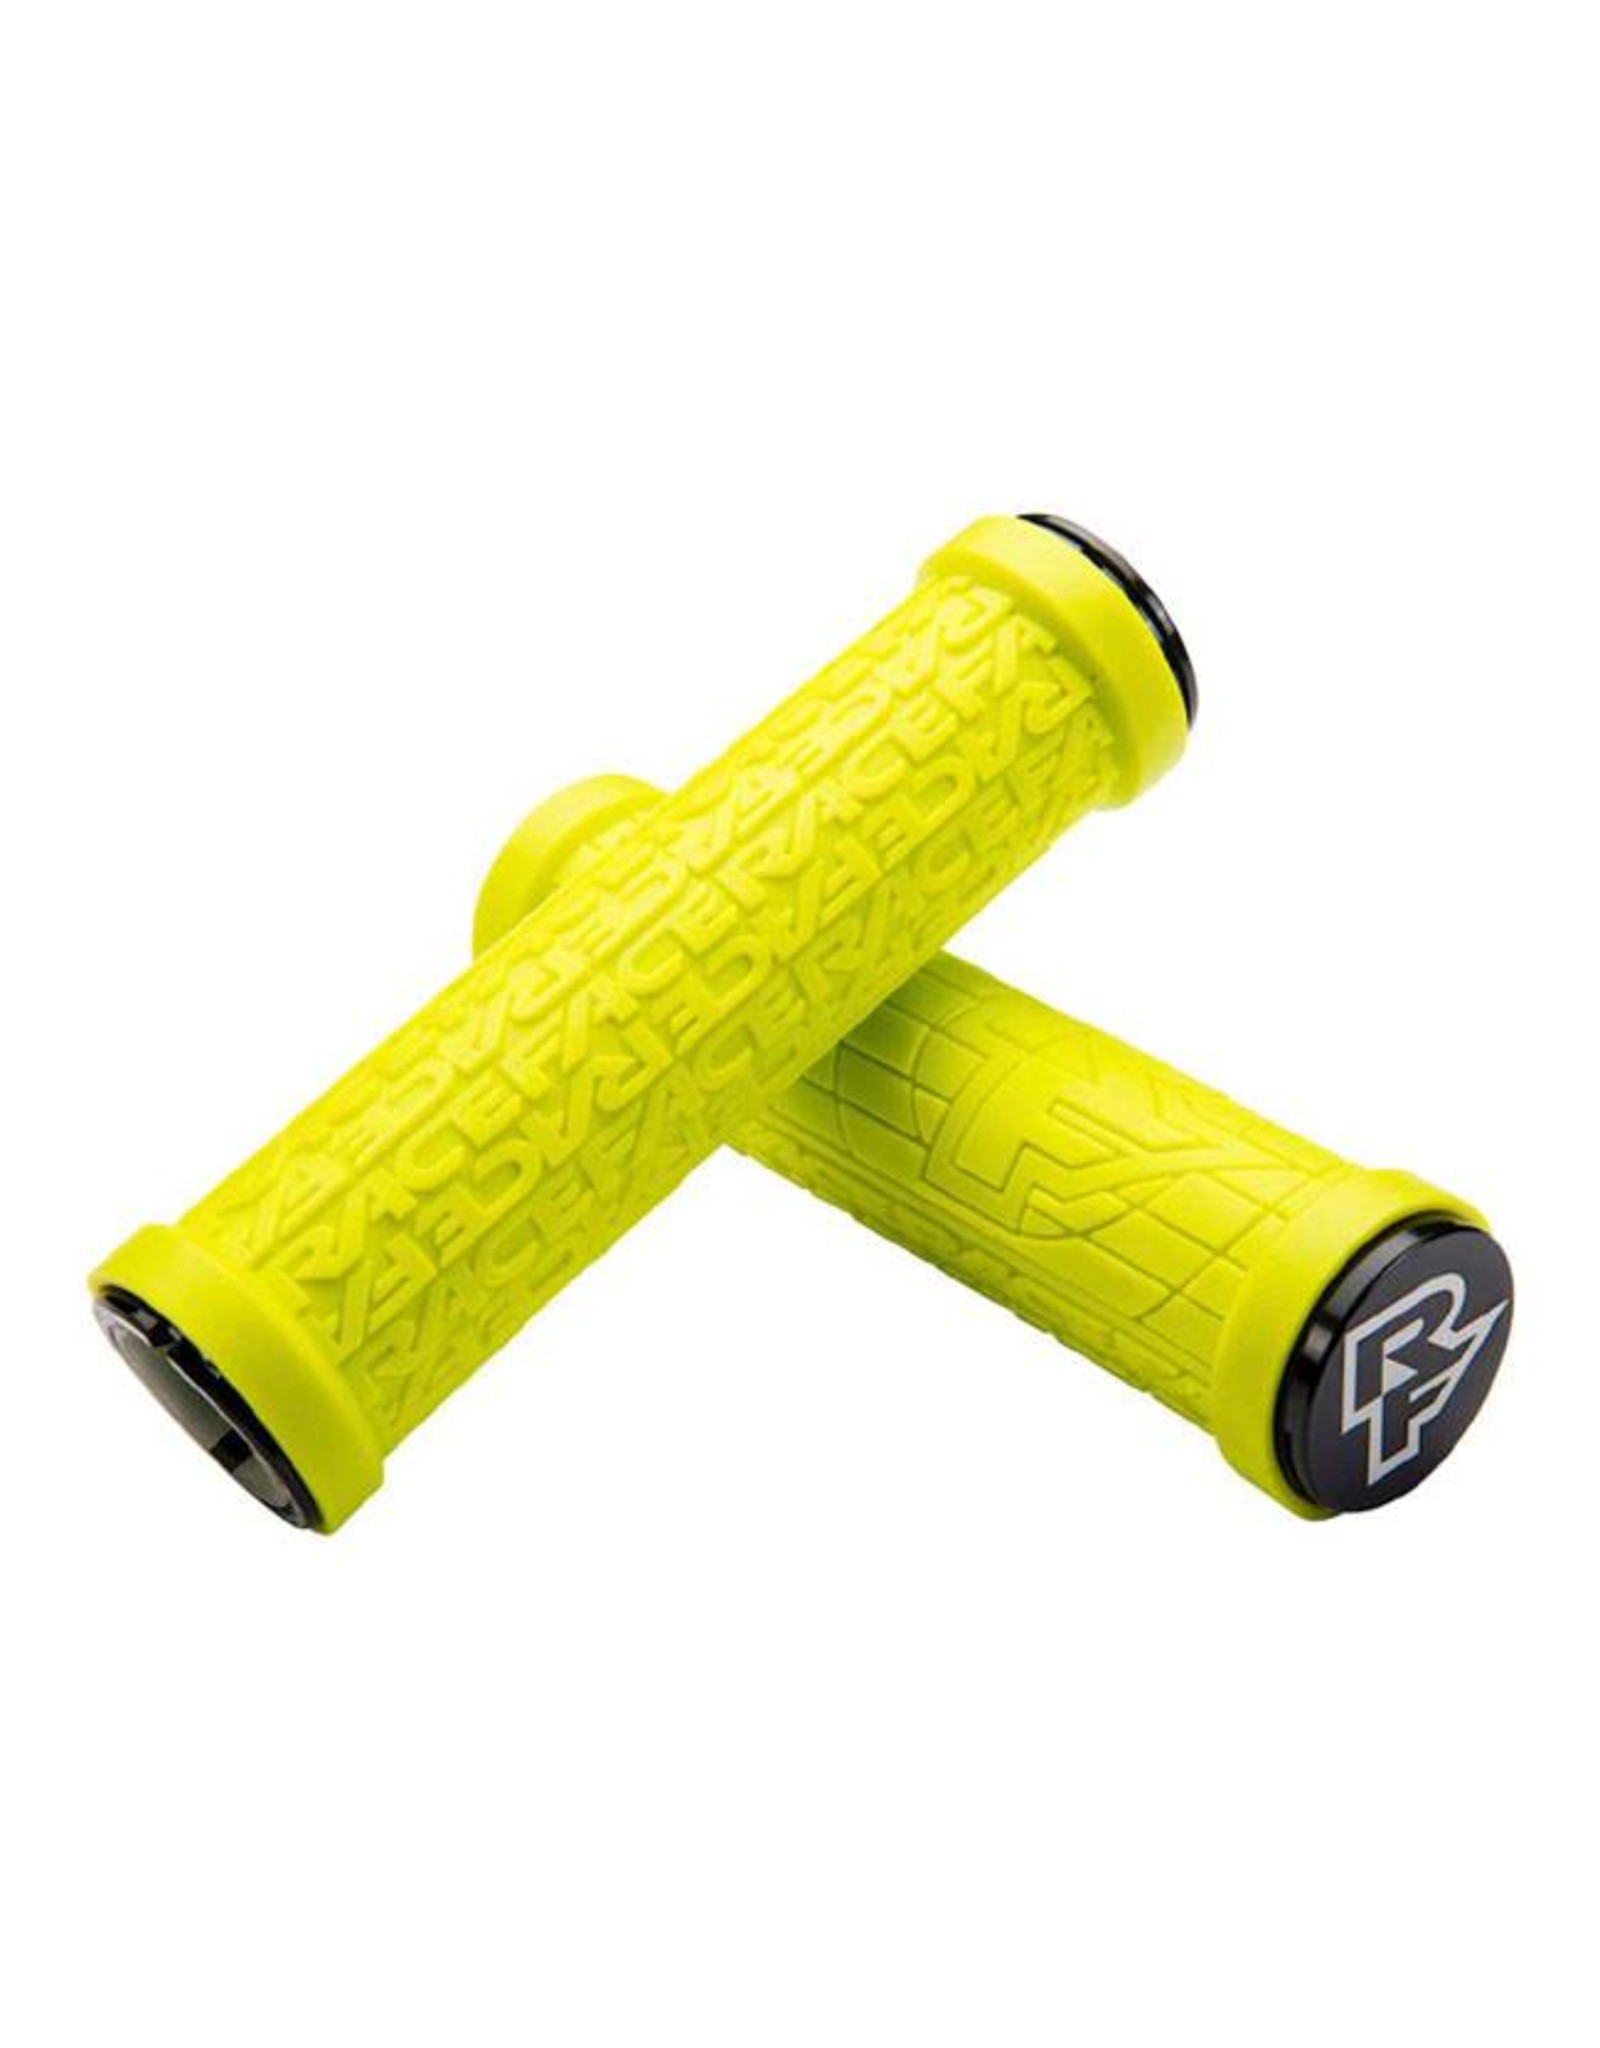 RaceFace RaceFace Grippler 30mm Lock-On Grip Yellow